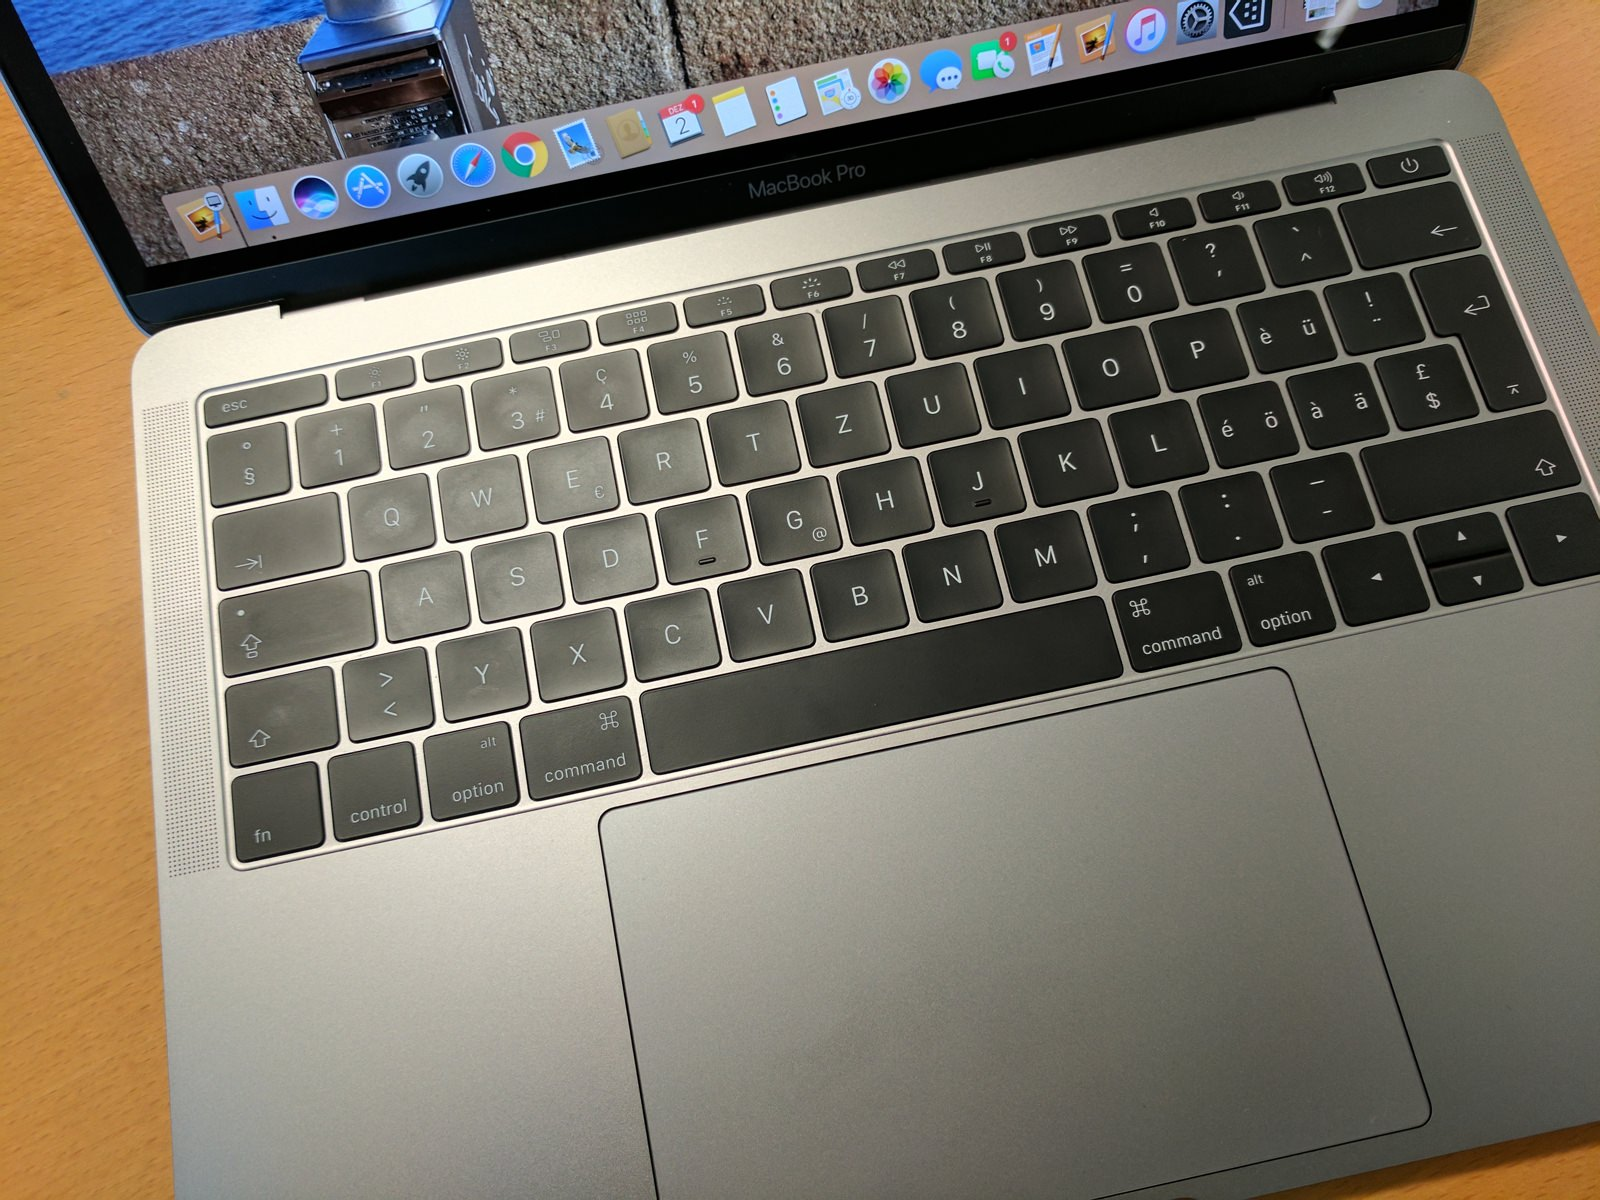 Test Macbook Pro 13 Ohne Touchbar Bye Bye Macbook Air Ifrick Ch Nothing But Techifrick Ch Nothing But Tech